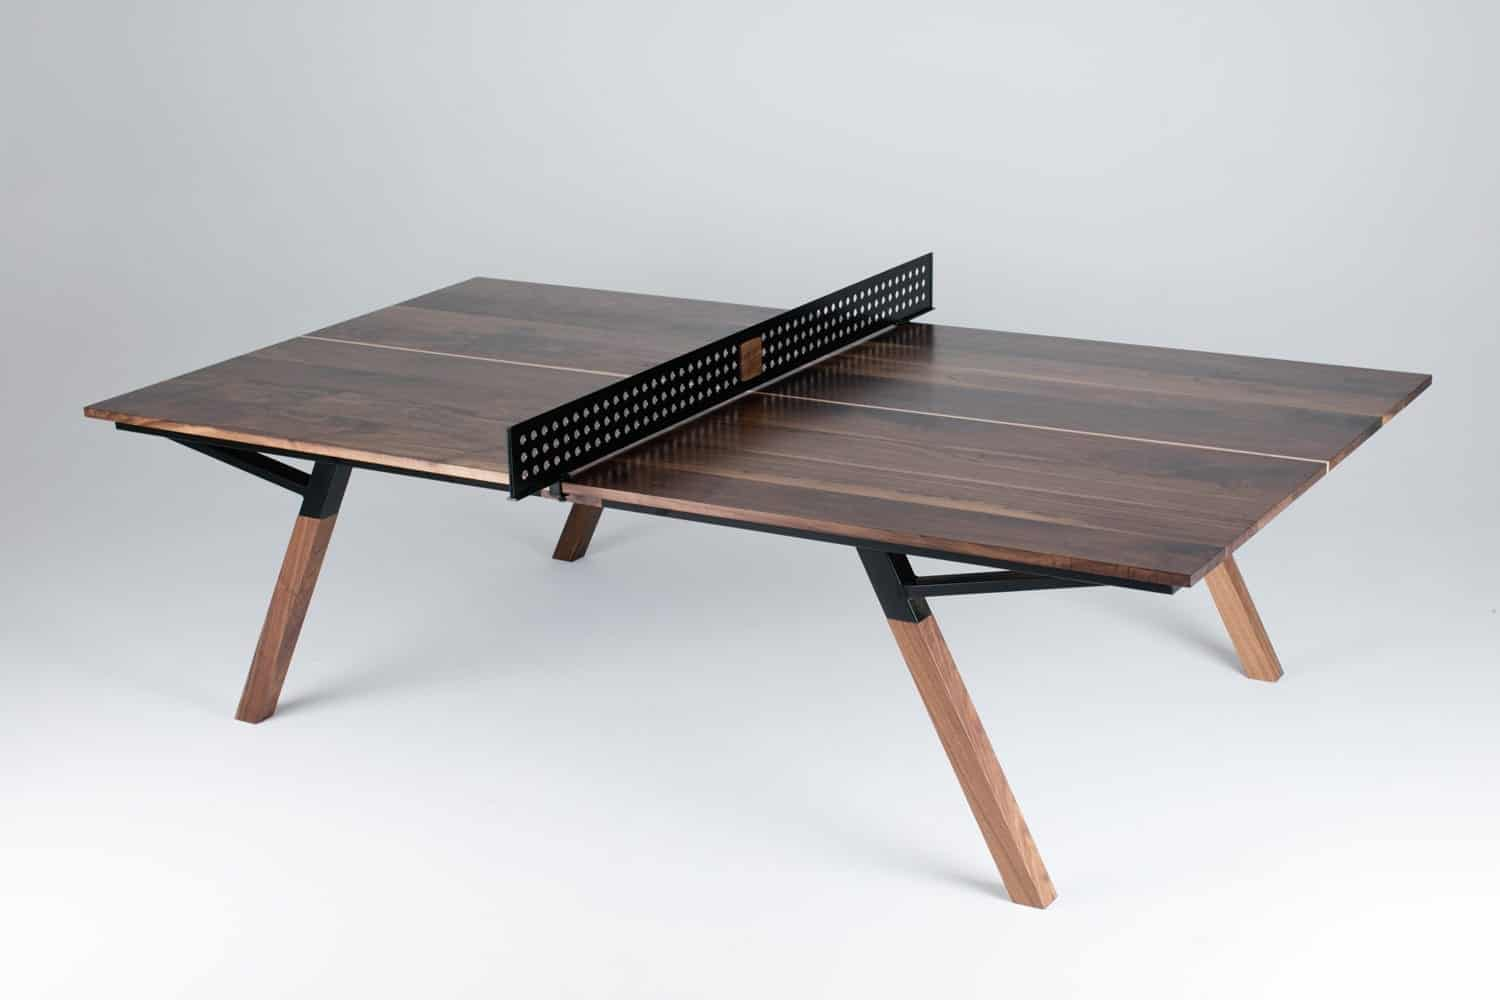 Black Walnut Ping Pong Table - Laguna Beach Art Galleries